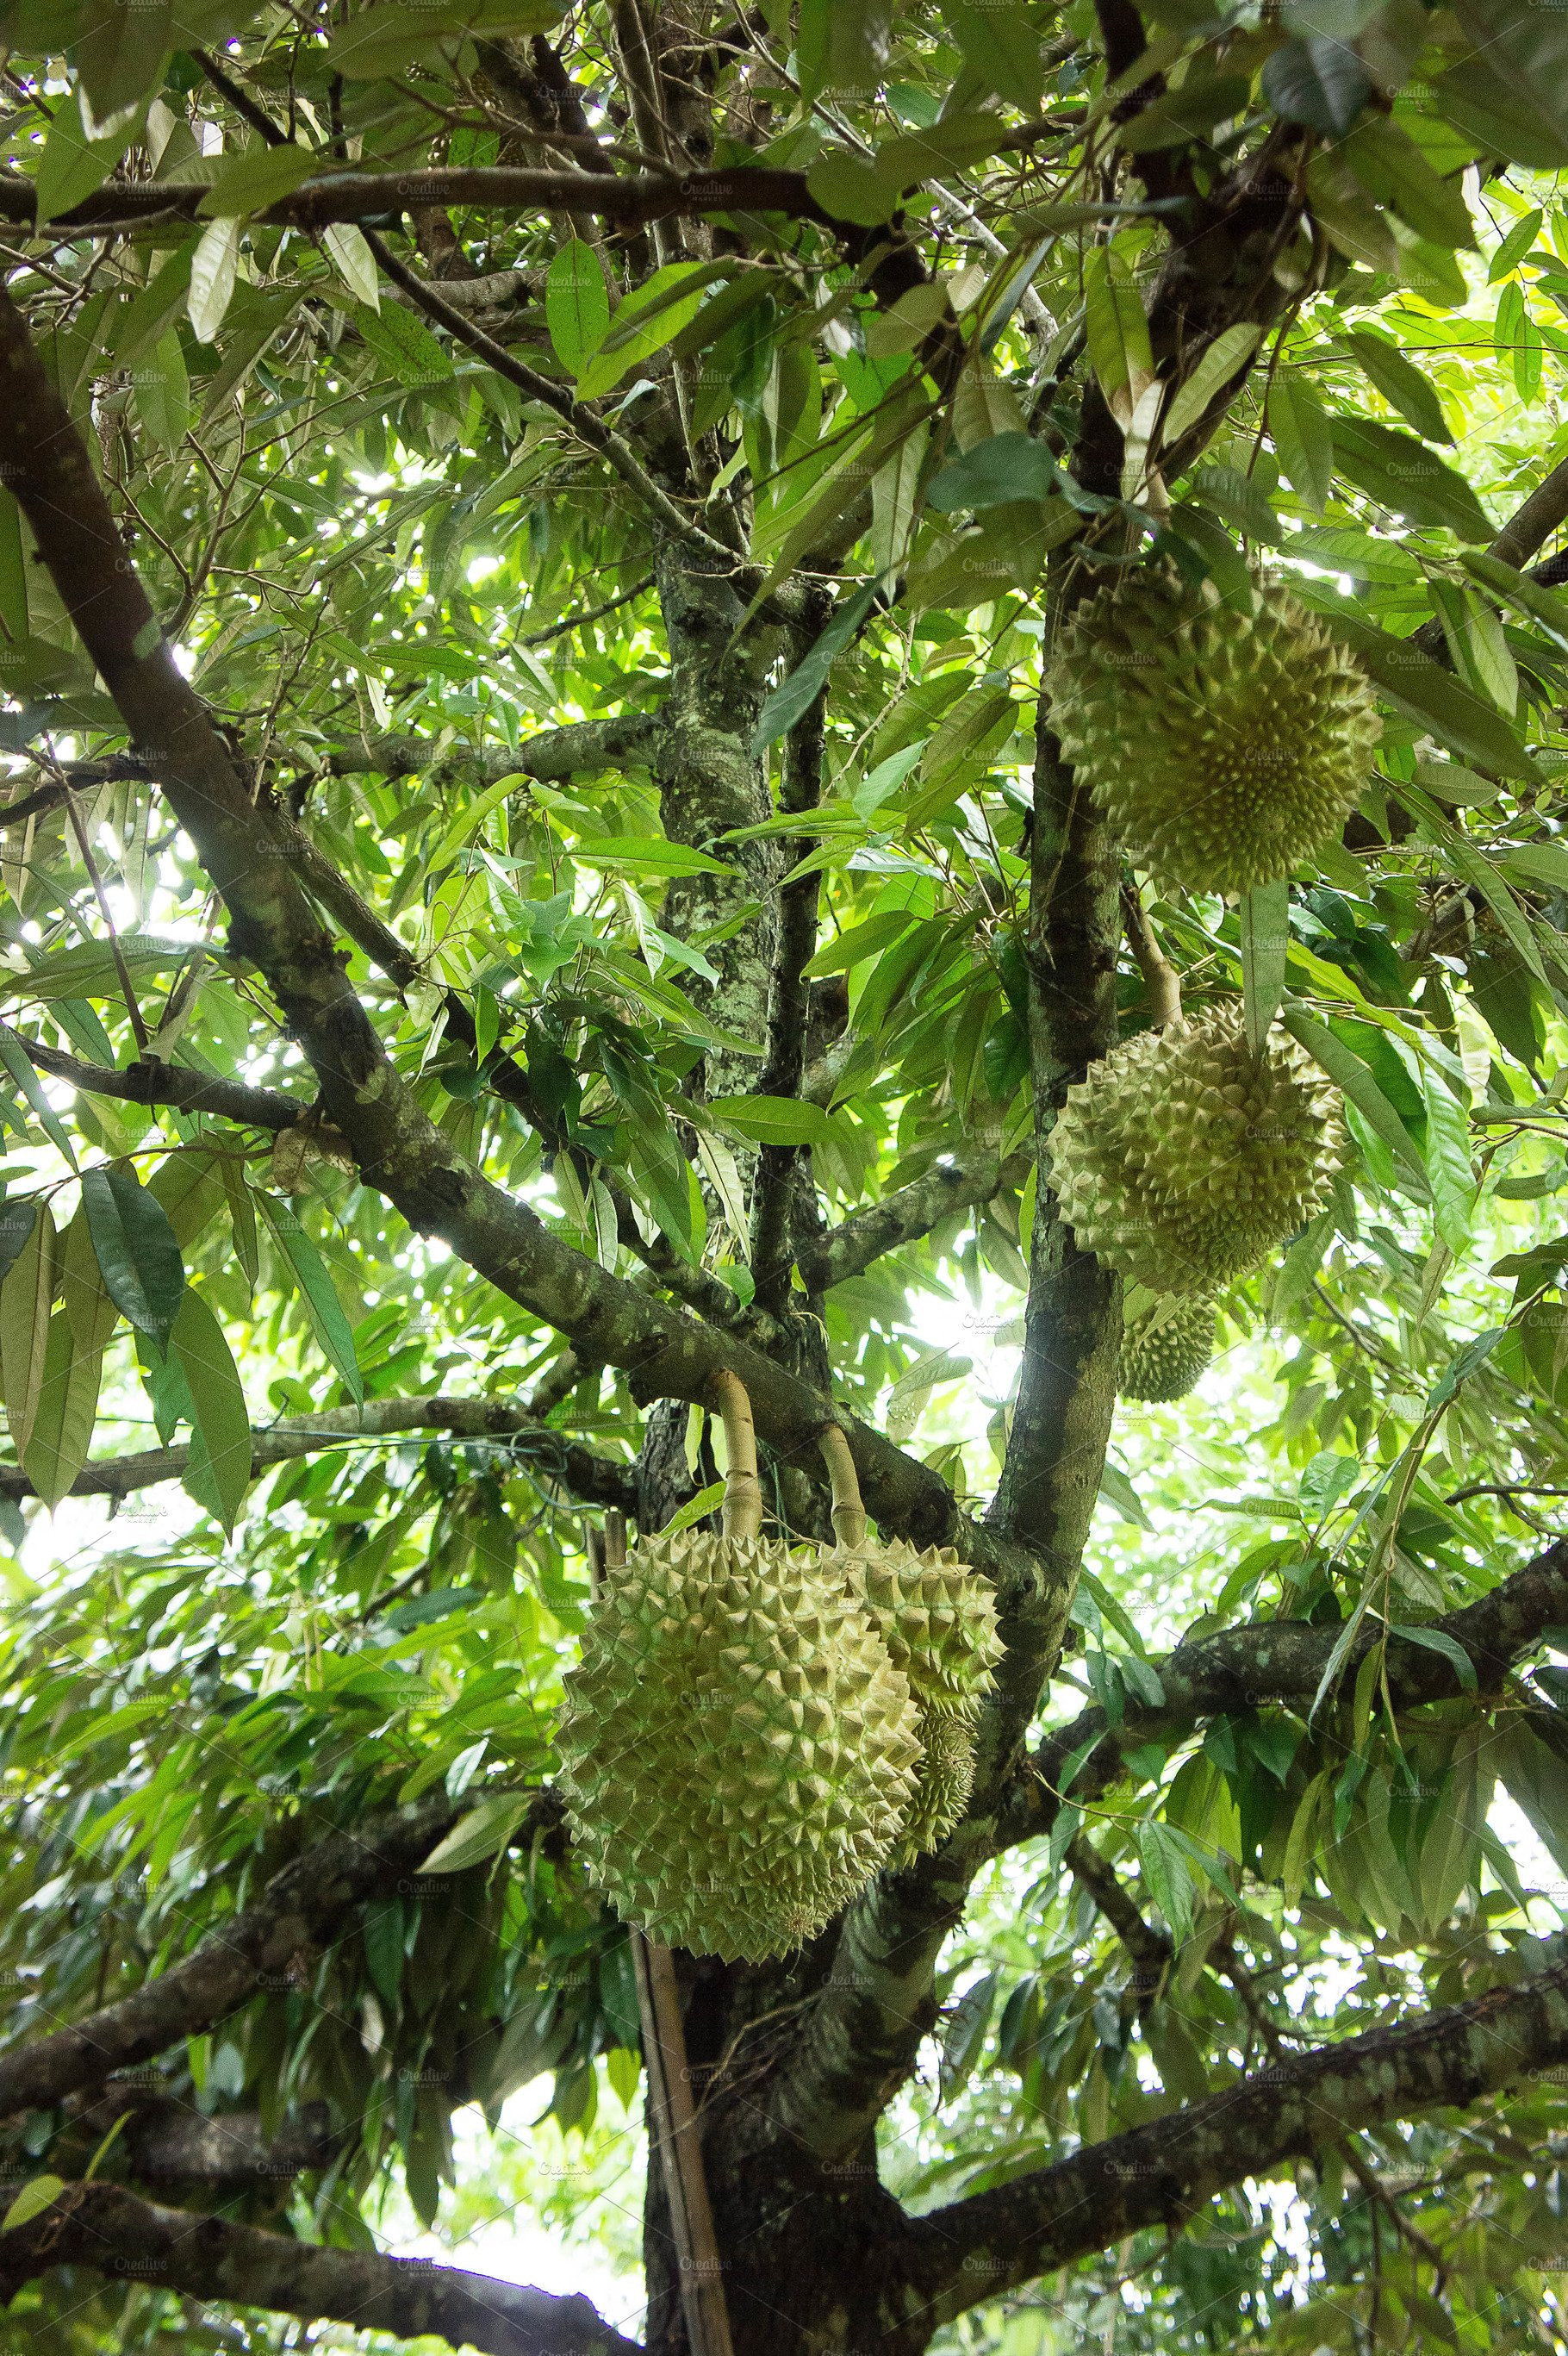 Durian Tree Organic Nature Photos Creative Market